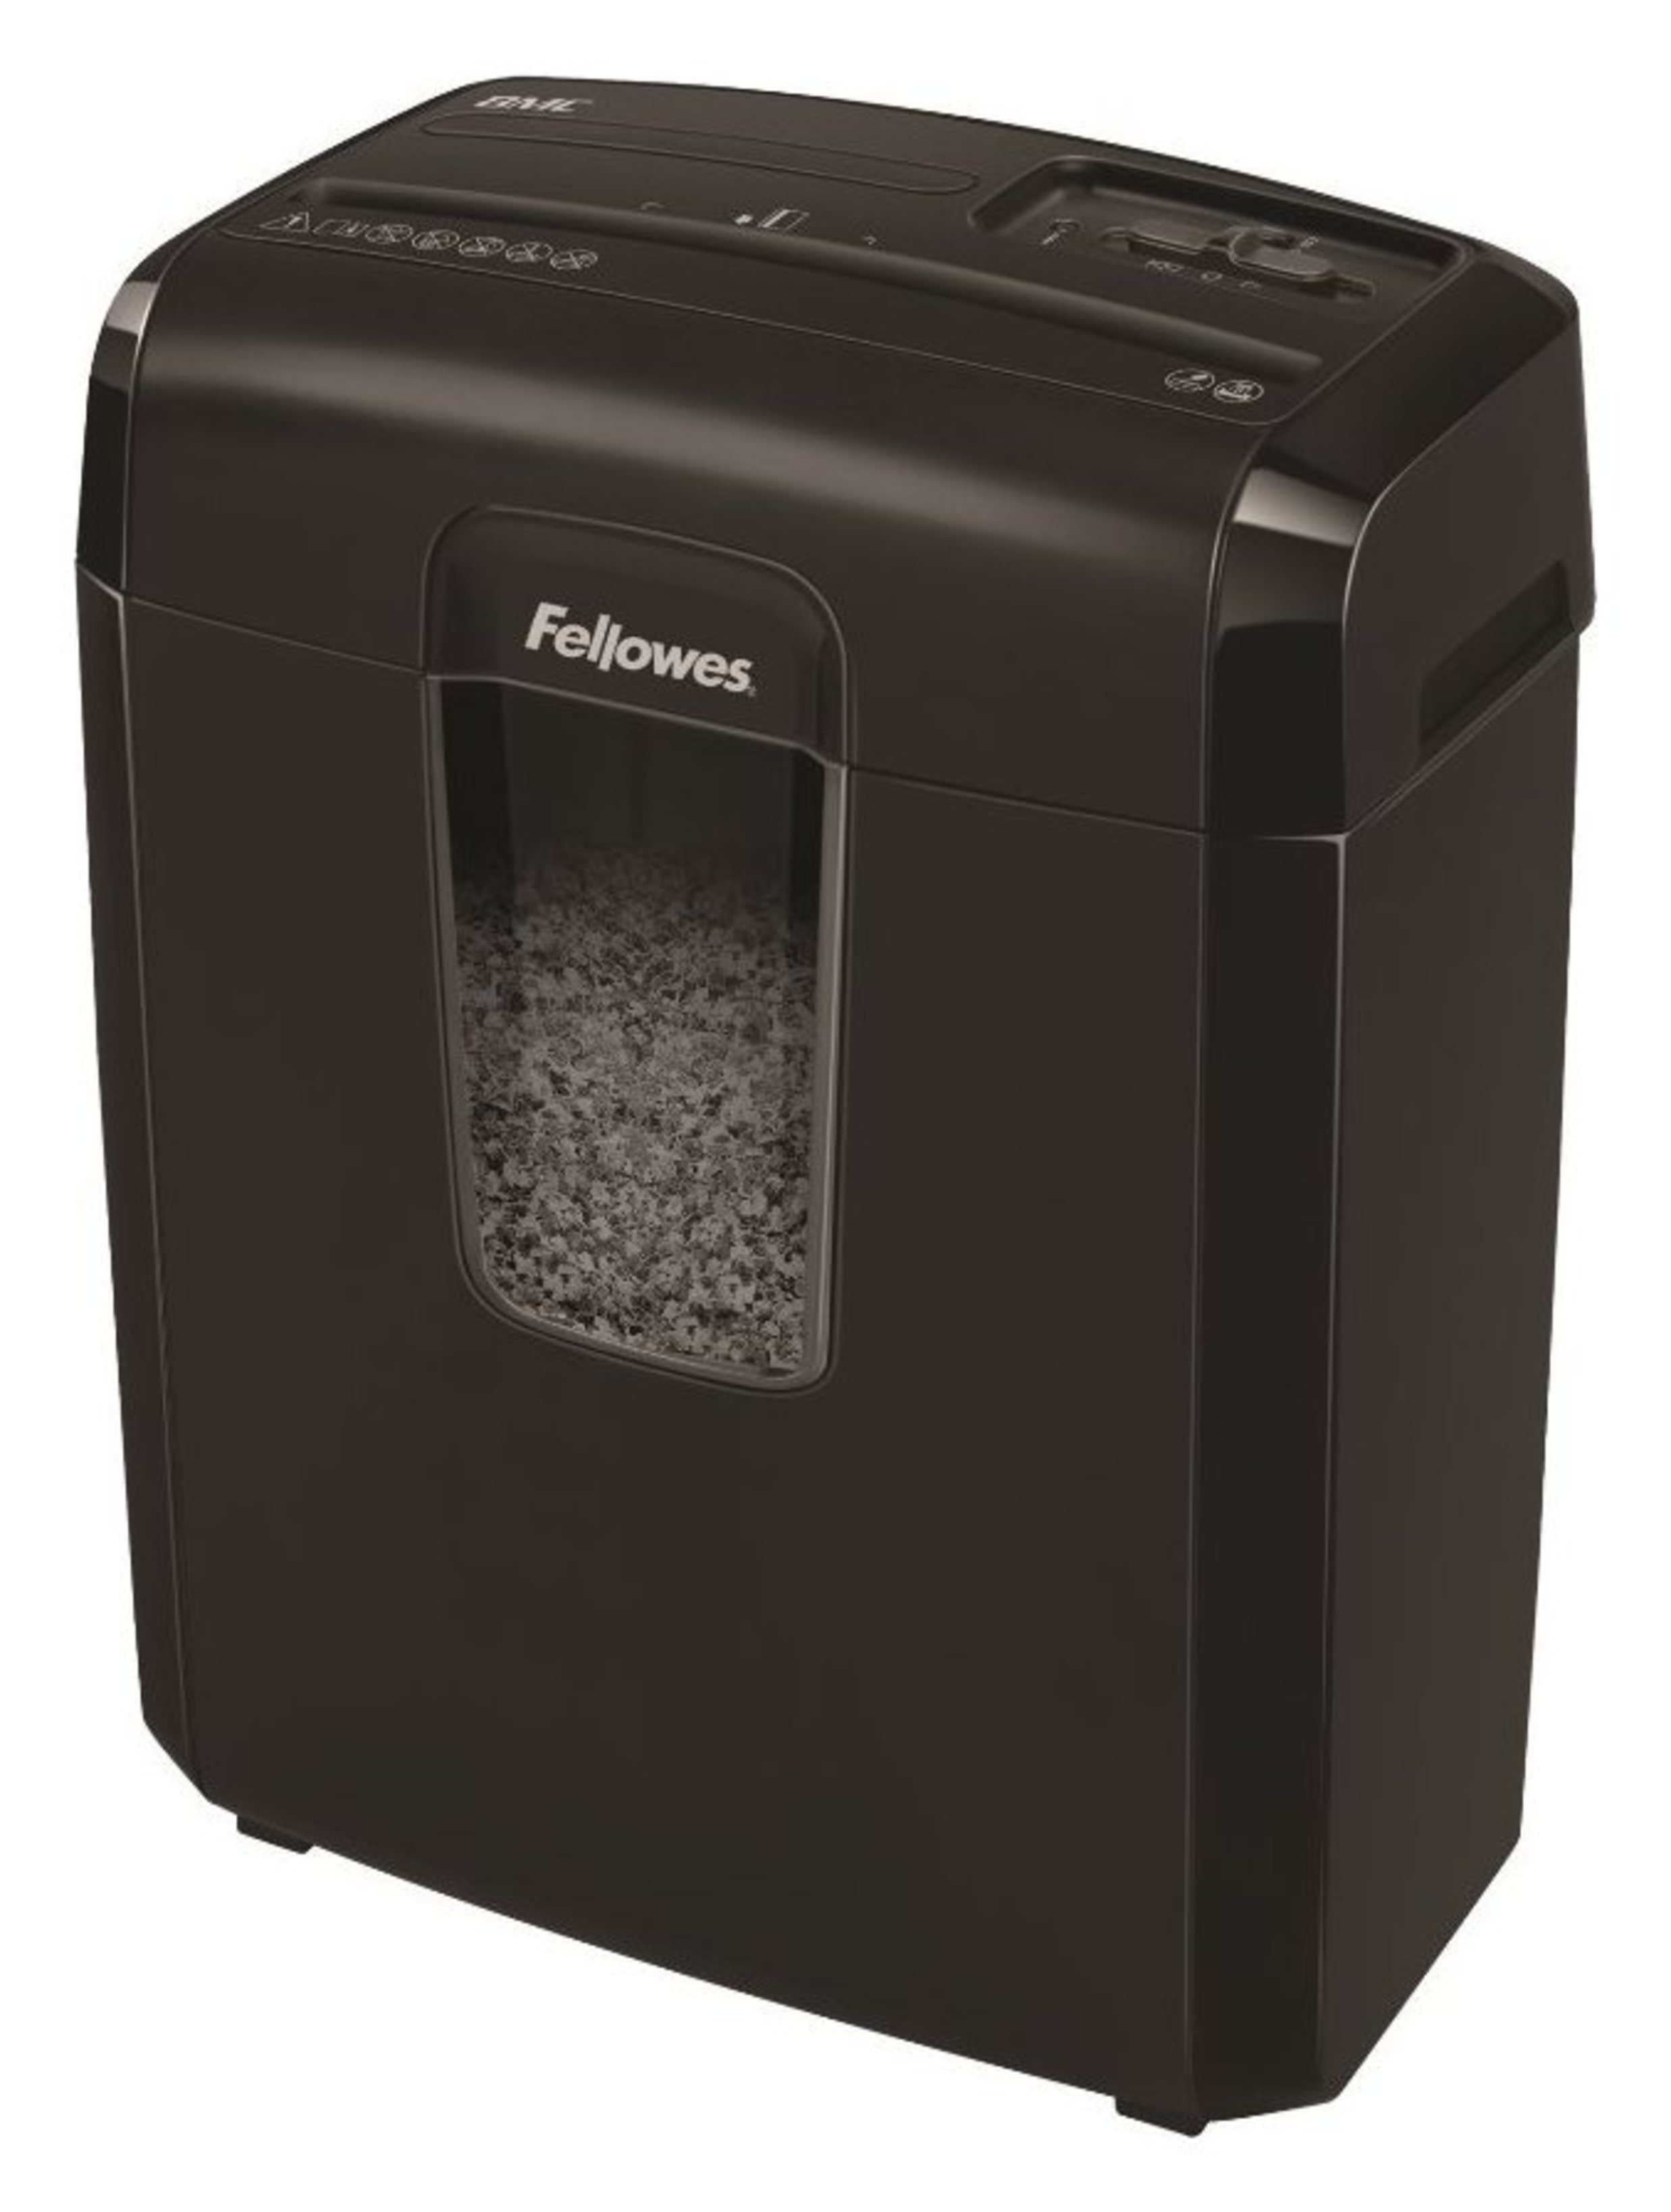 Image of Fellowes 8MC 8 Sheet Micro Cut Shredder